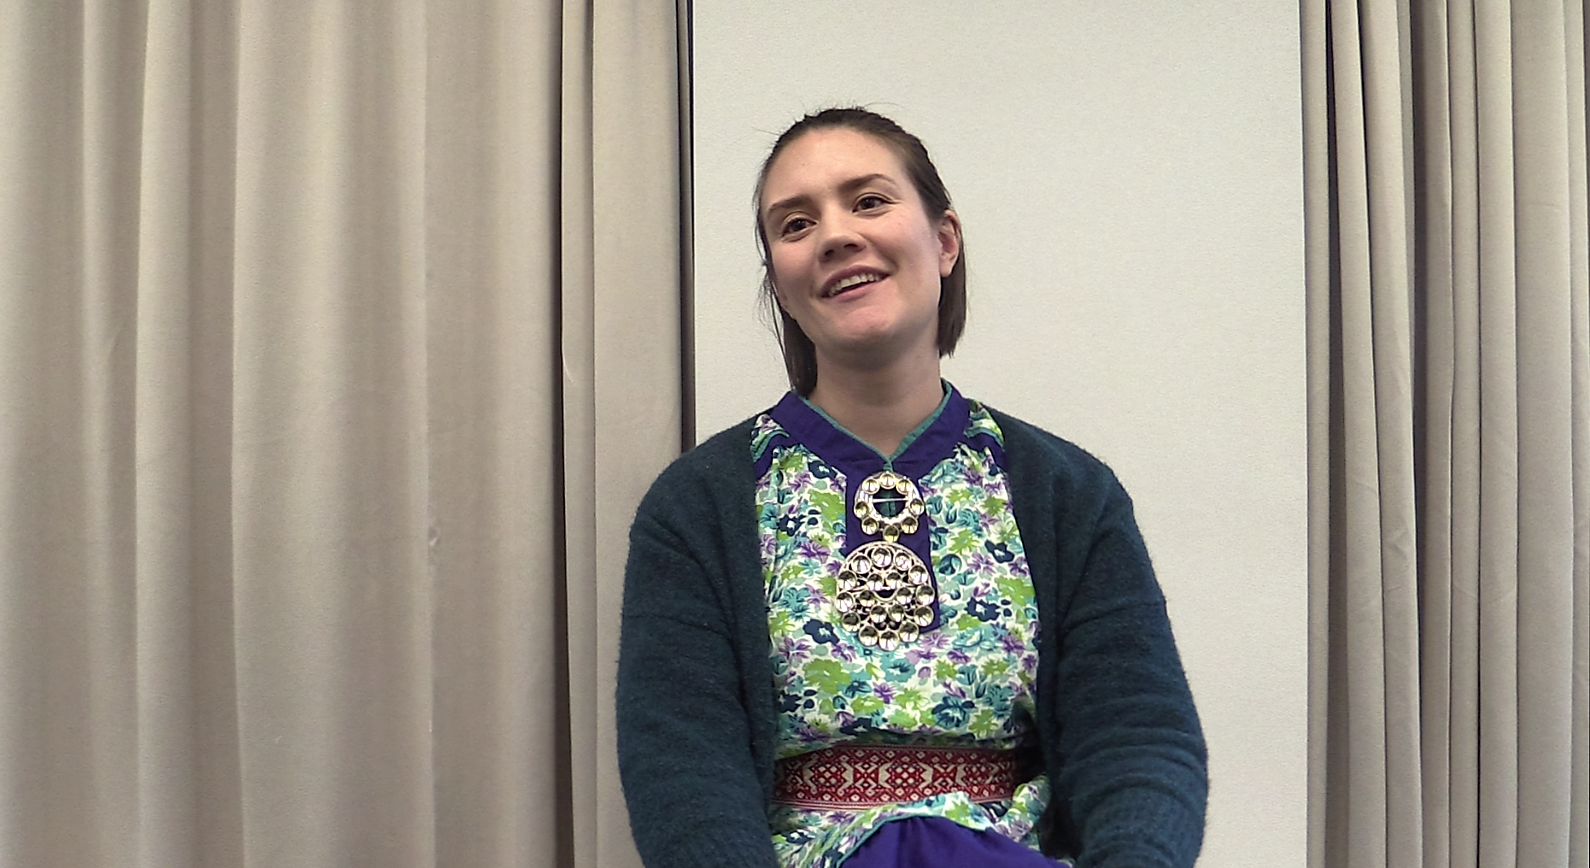 Isalill Simonsen Kolpus is works with helpin Sámi youth in Norway connect with their heritage